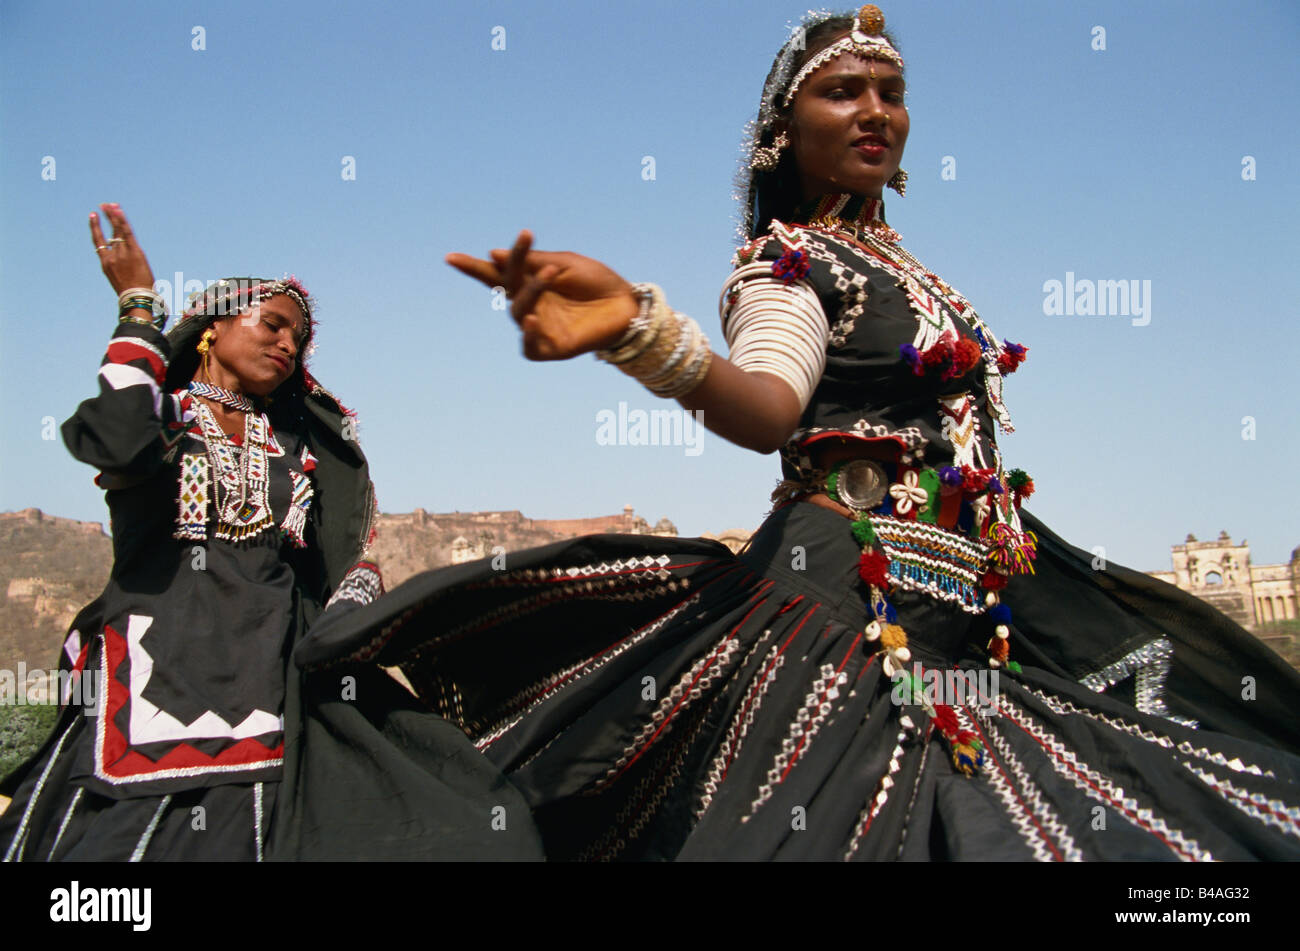 c4f3ac48e53a Rajasthani Folk Dancer Jaipur Stock Photos & Rajasthani Folk Dancer ...